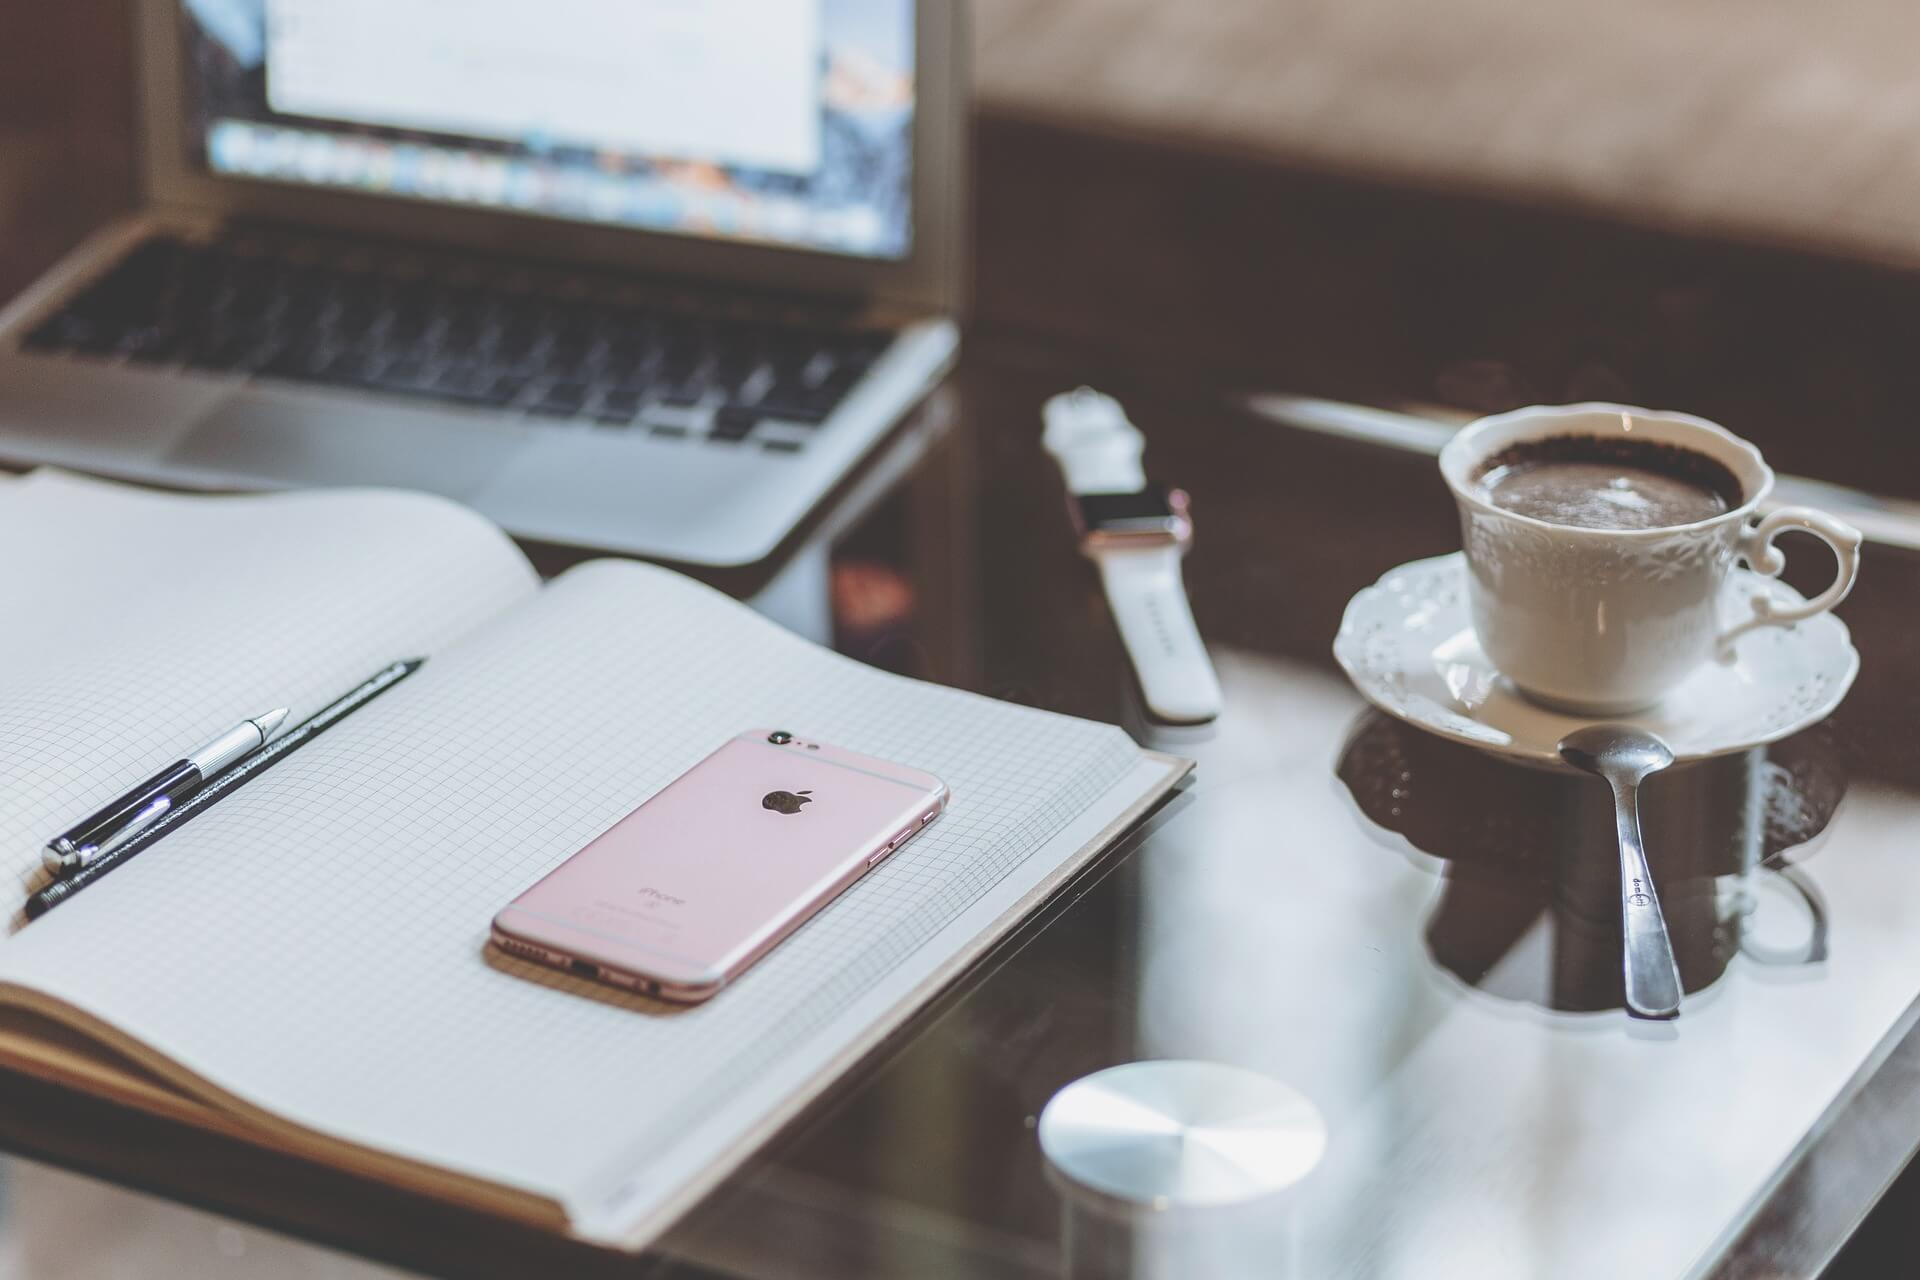 ipad-pro-office365